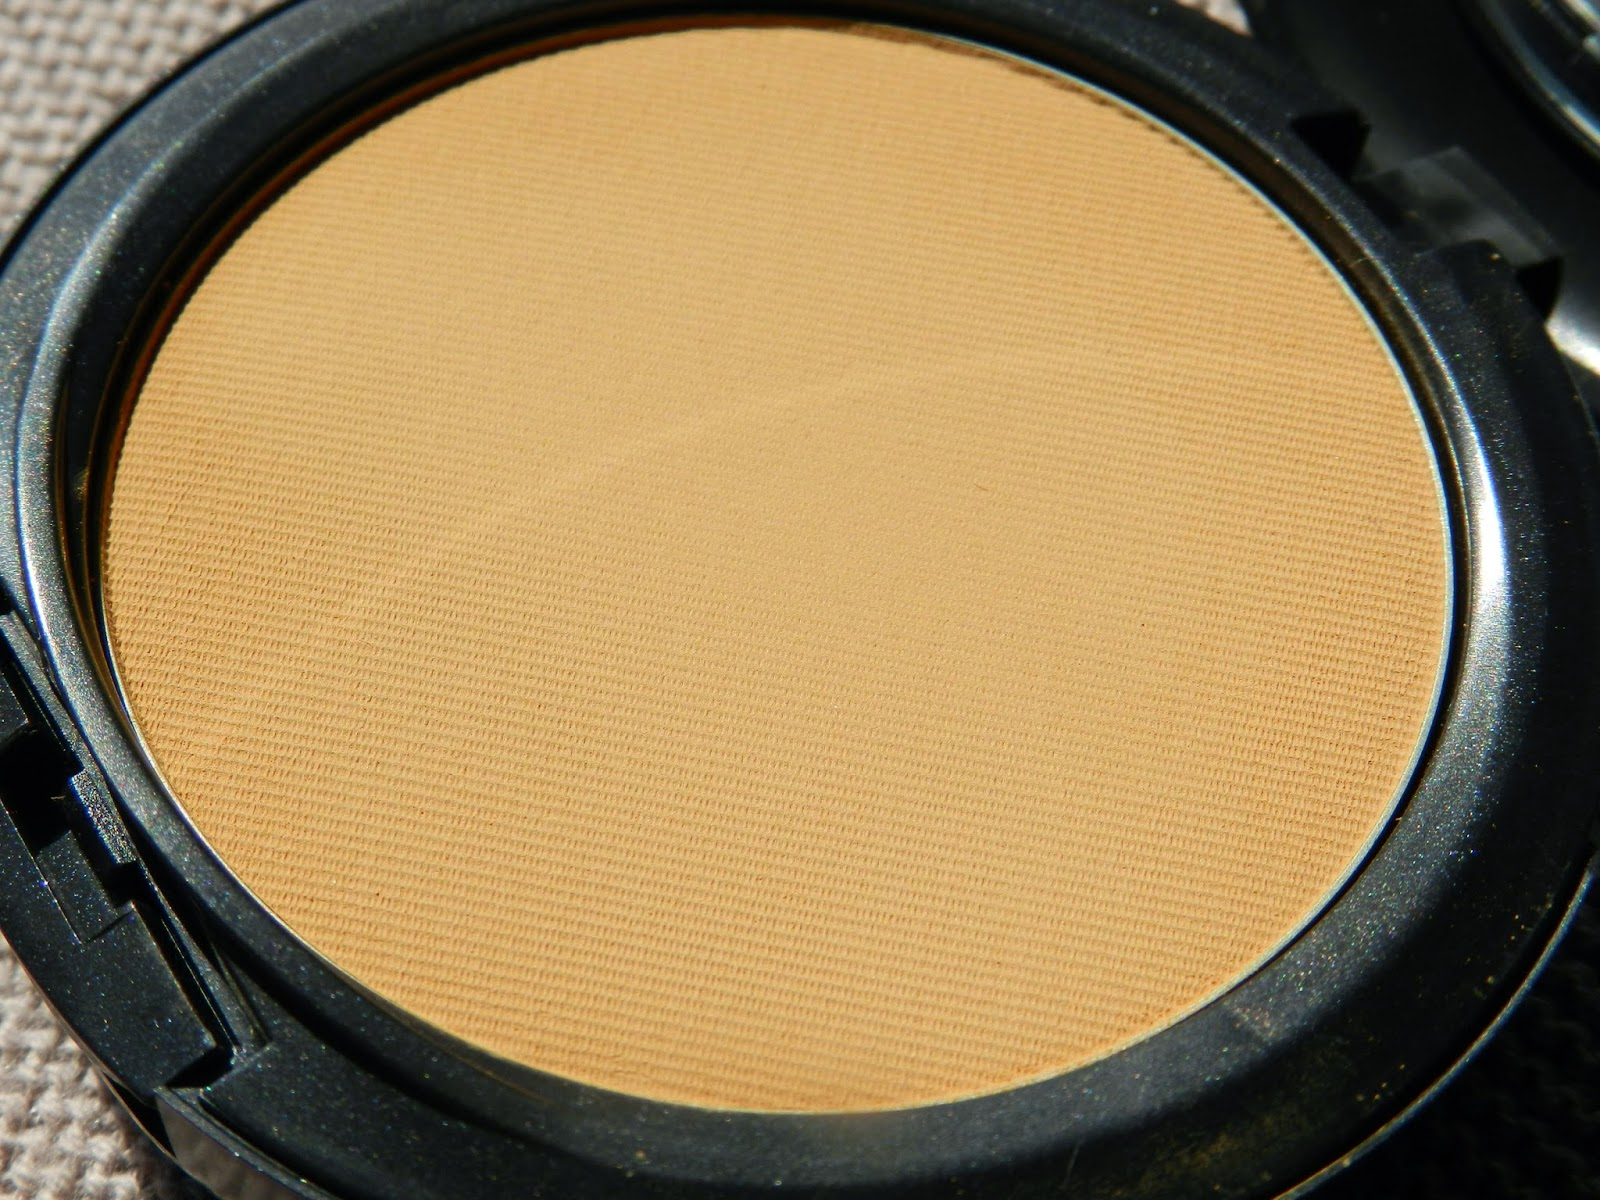 MAC Studio Fix Powder plus Foundation NC43